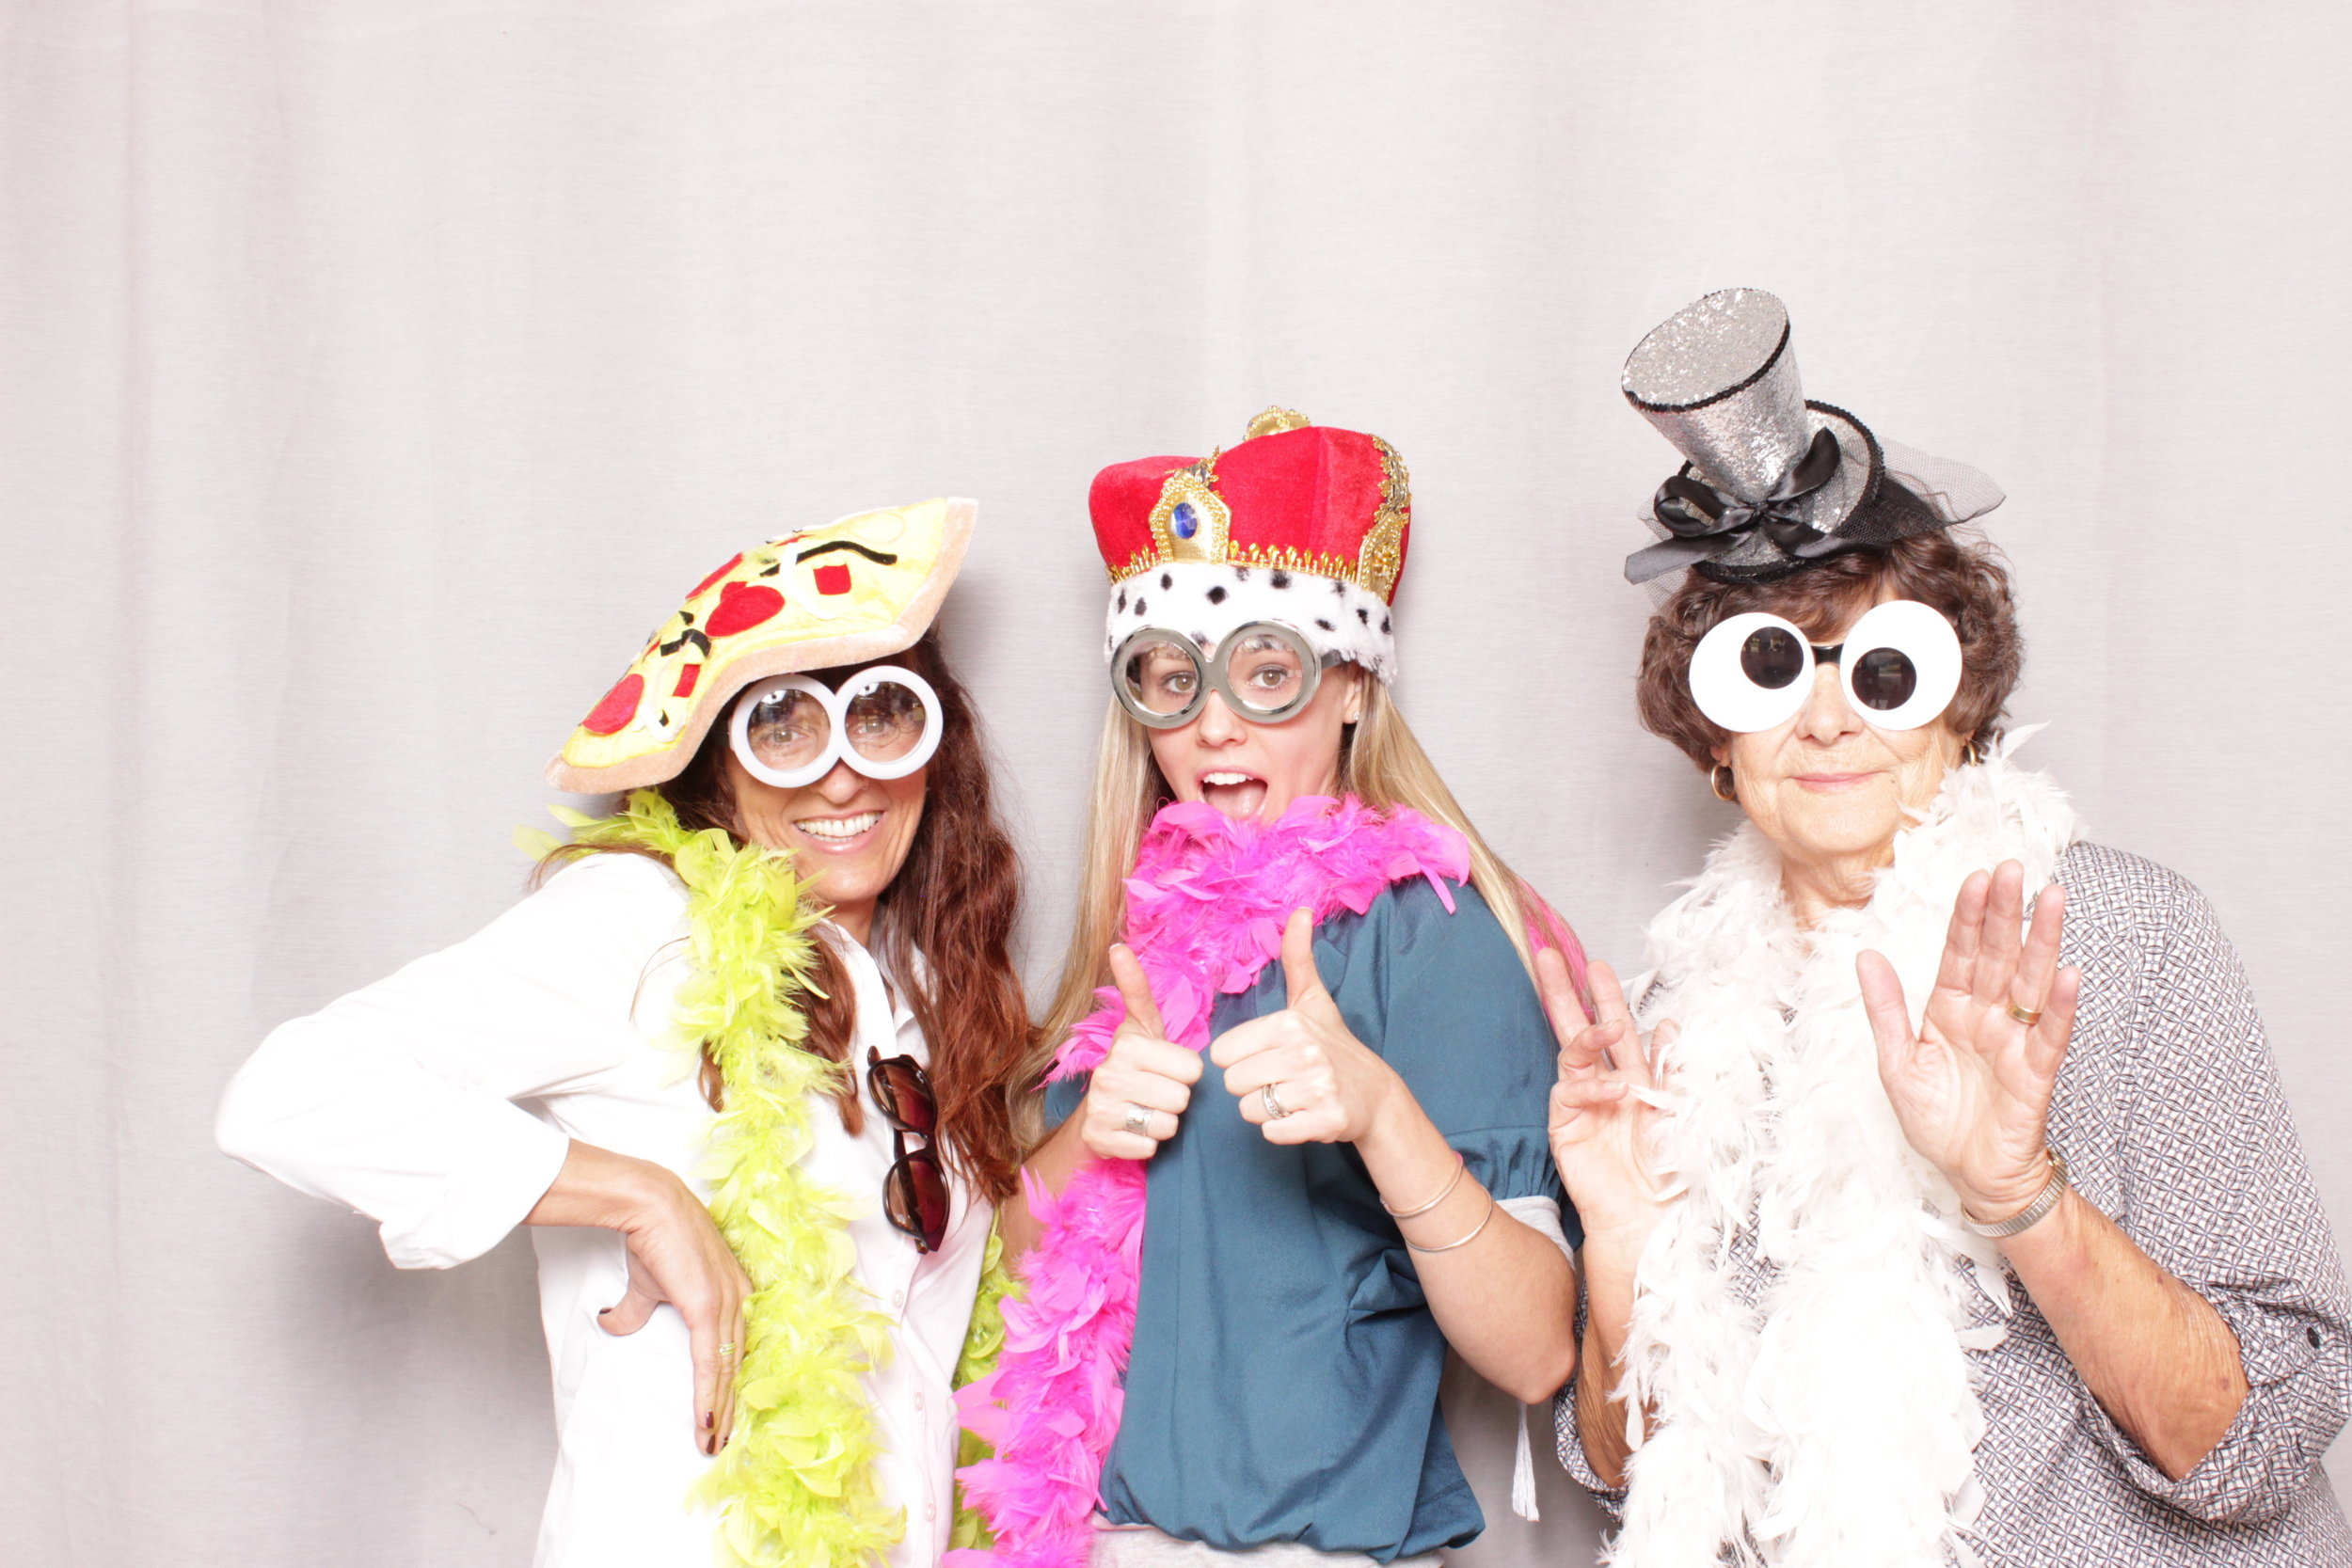 Chico-photo-booth-rental-easy